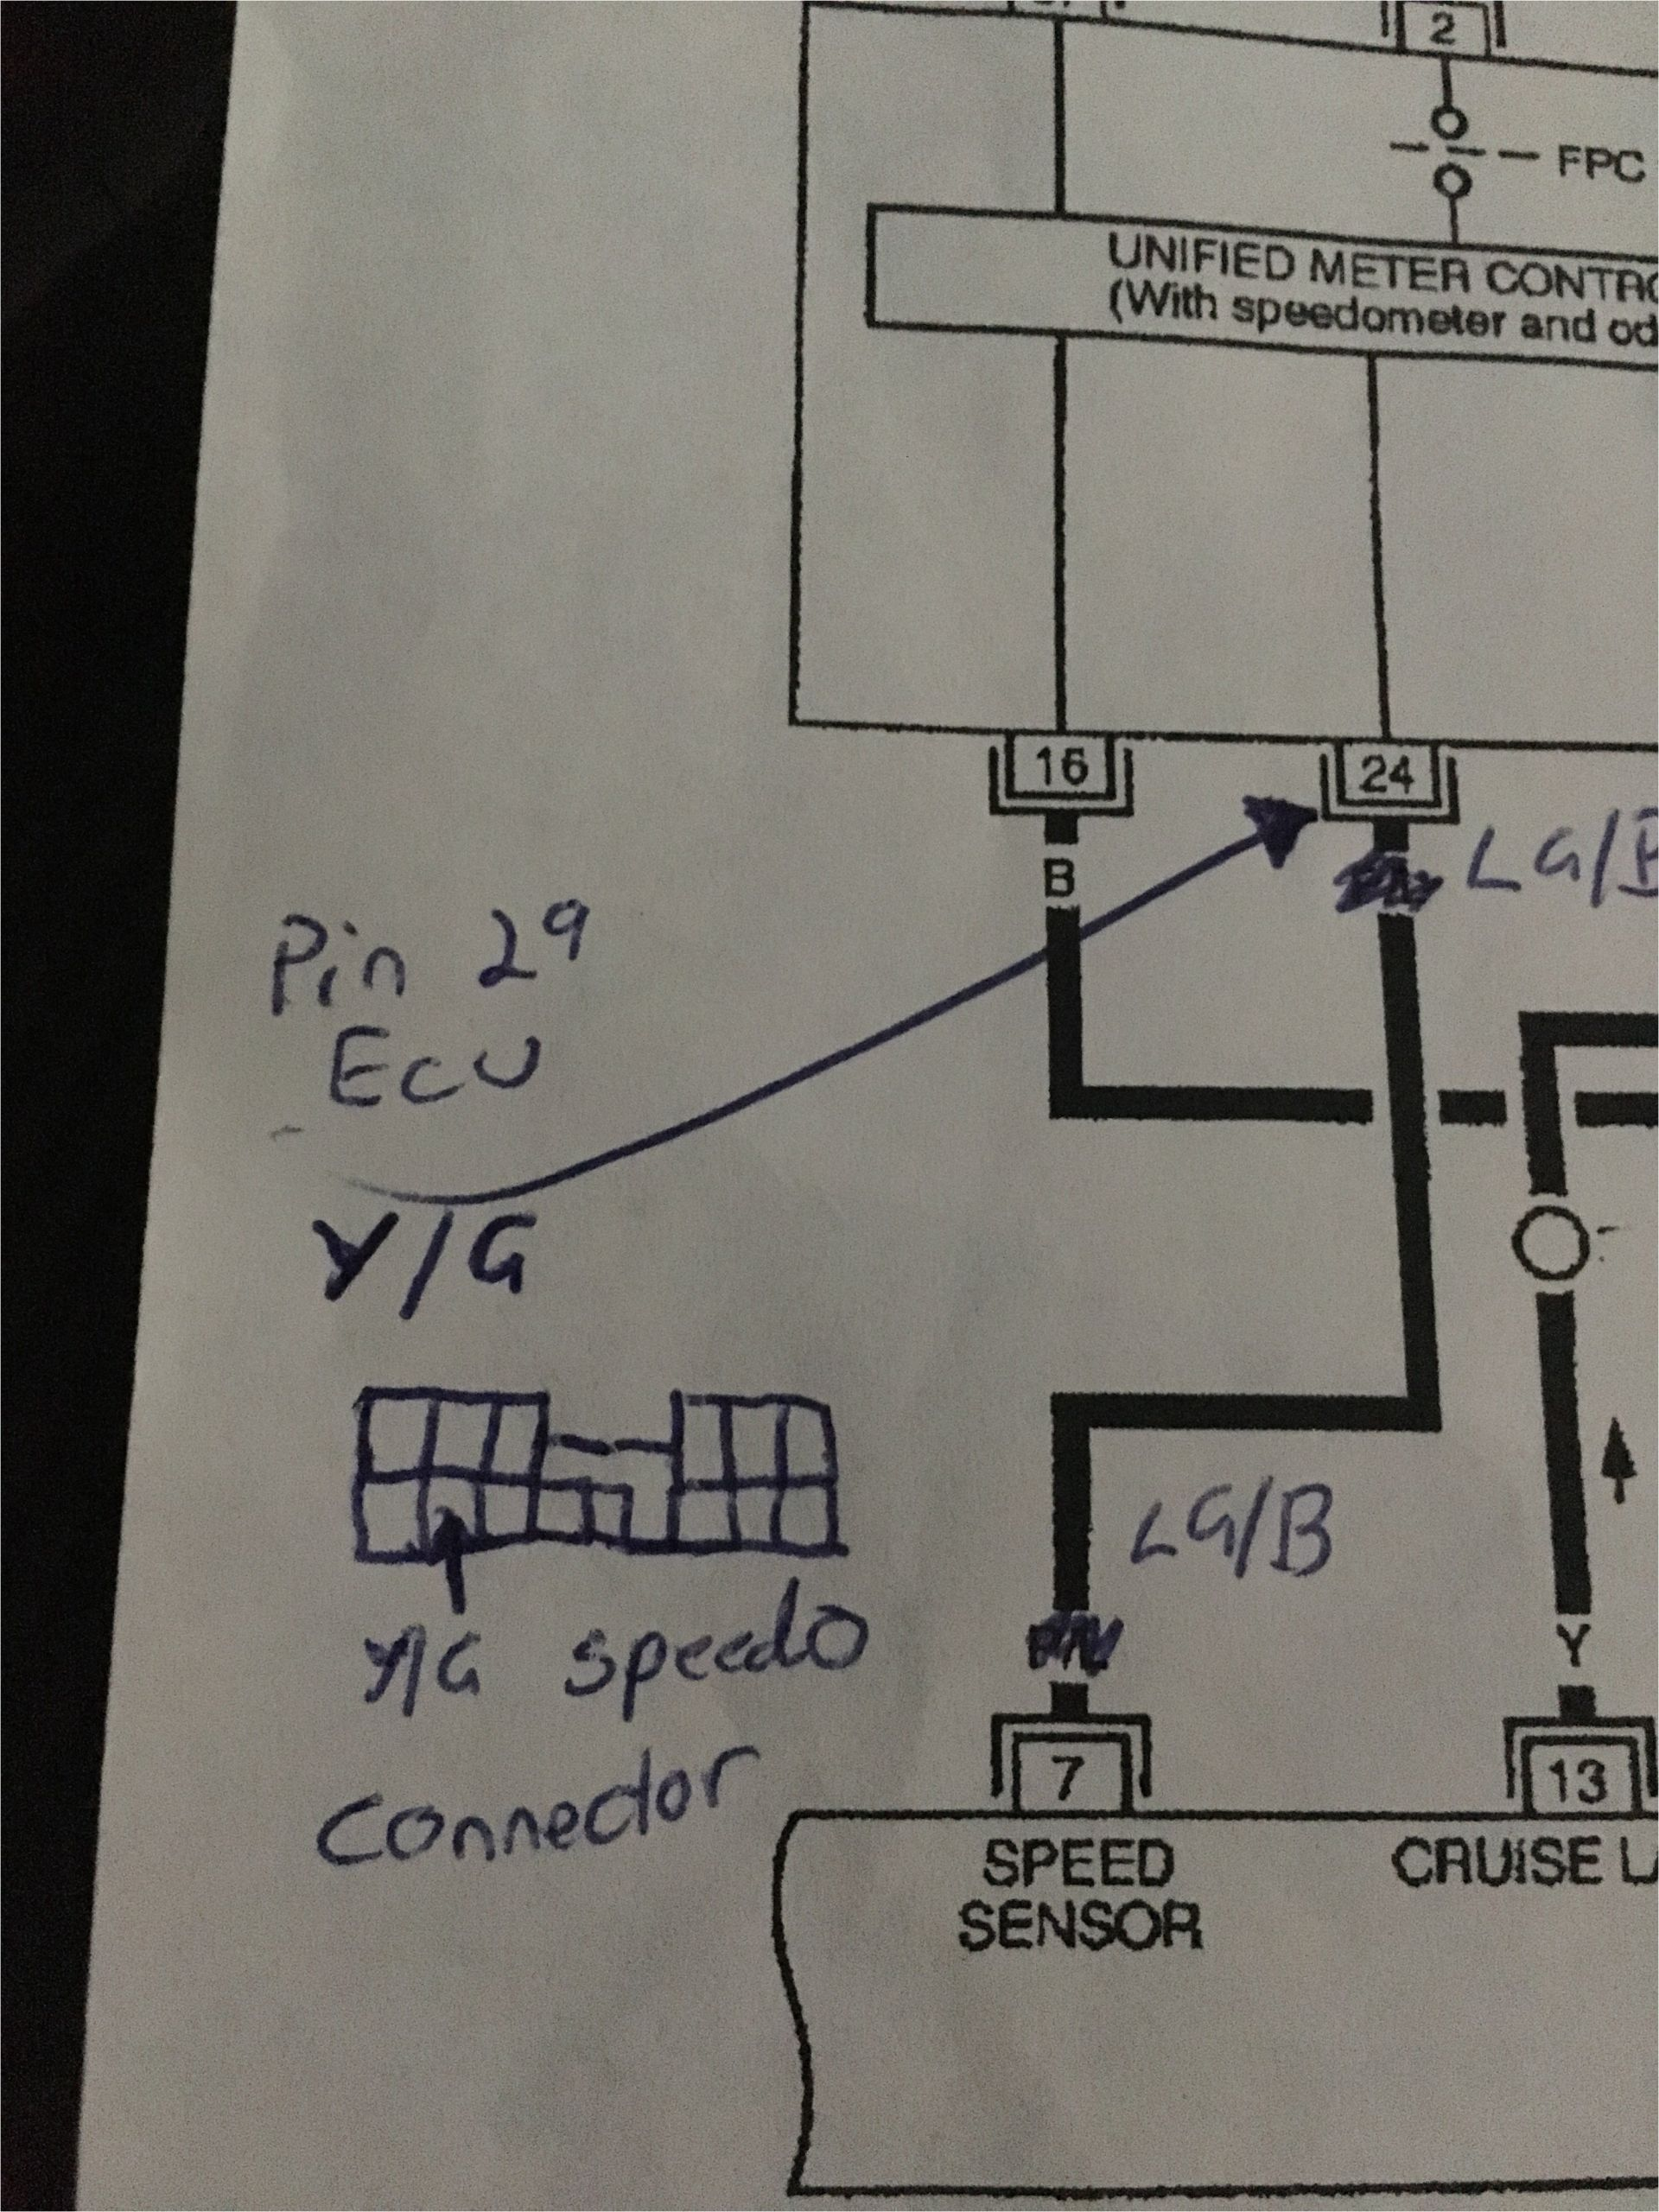 Aftermarket Cruise Control Wiring Diagram Tr 7579 Pin Cruise Control Wiring Diagram Page 1 On